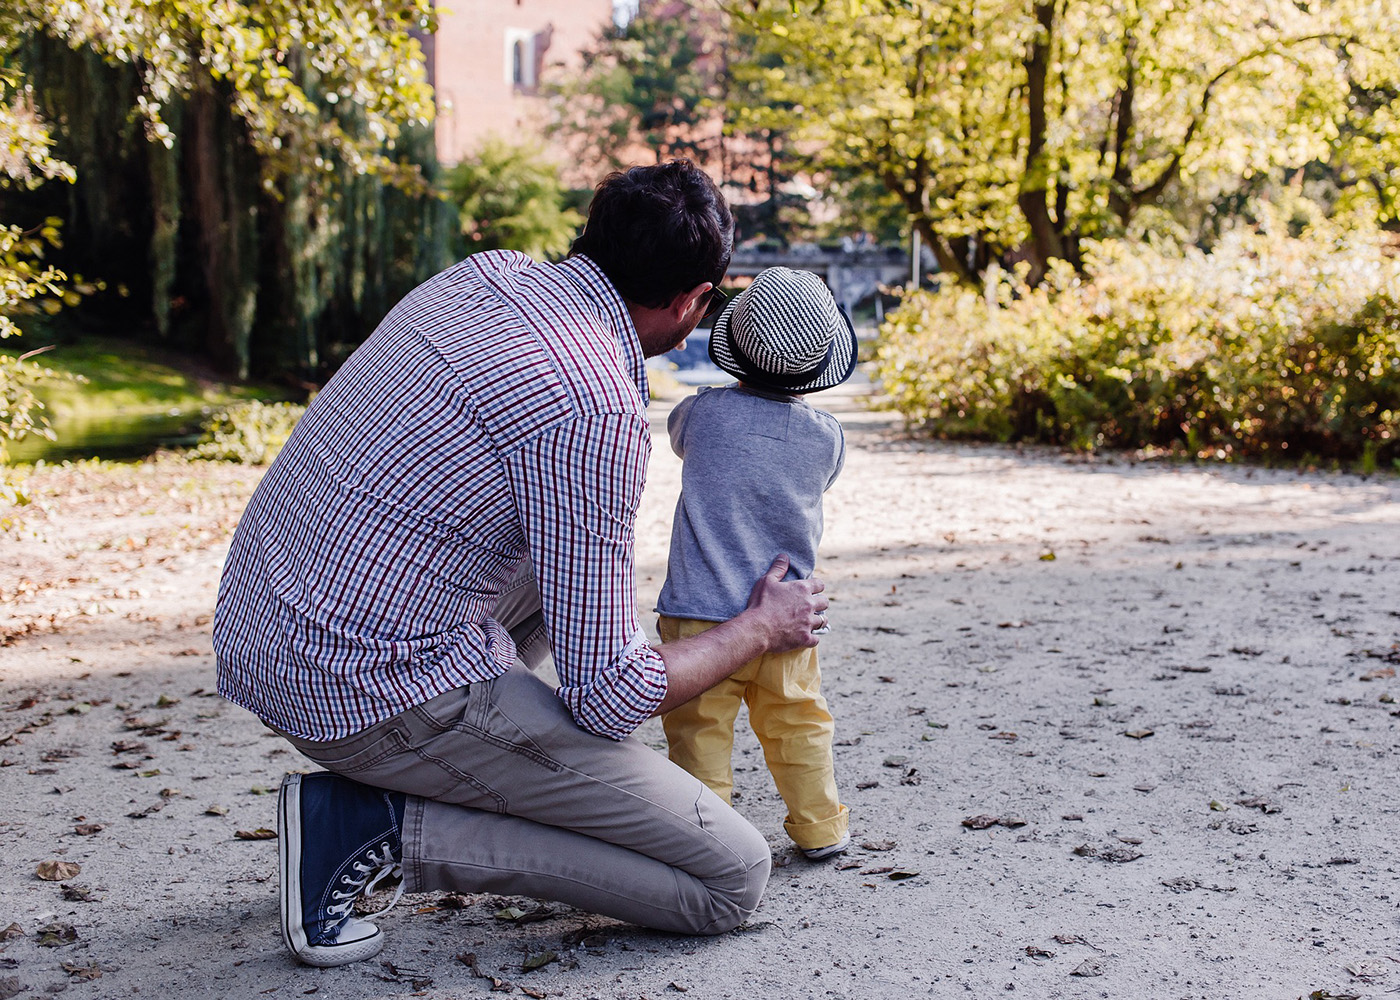 How To Pass On Your Financial Values to the Next Generation